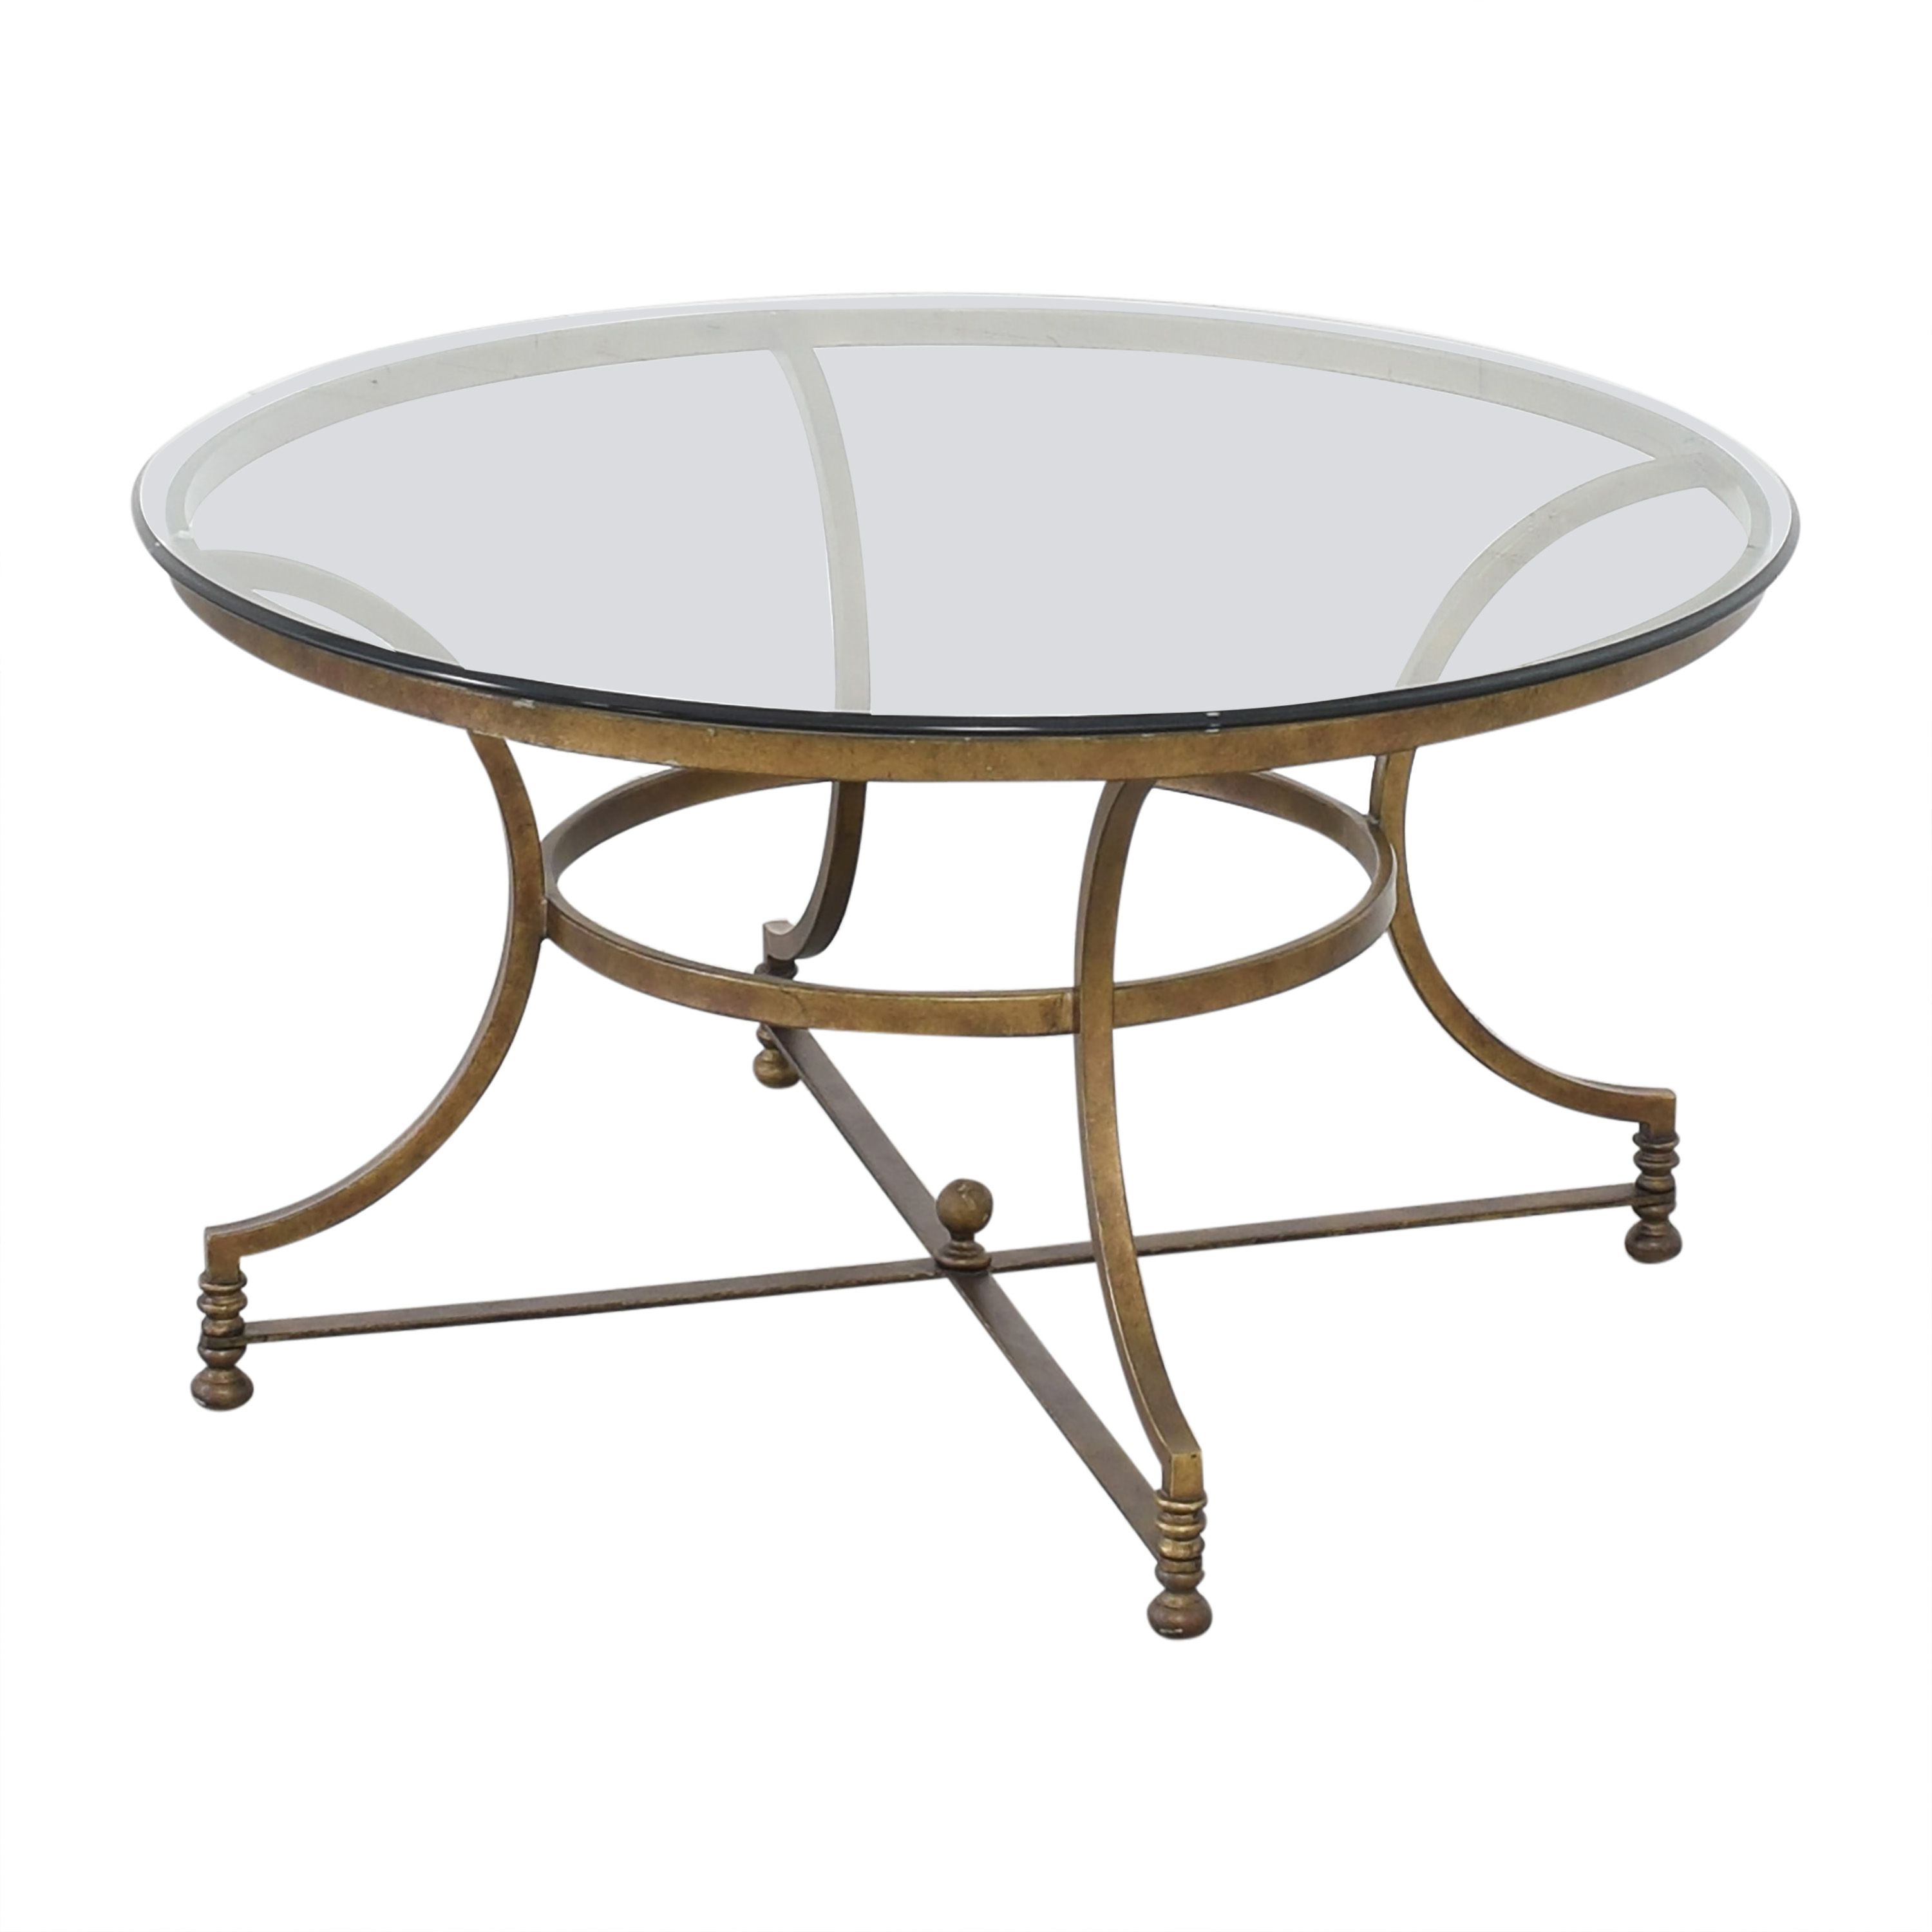 Thomasville Round Glass Coffee Table discount